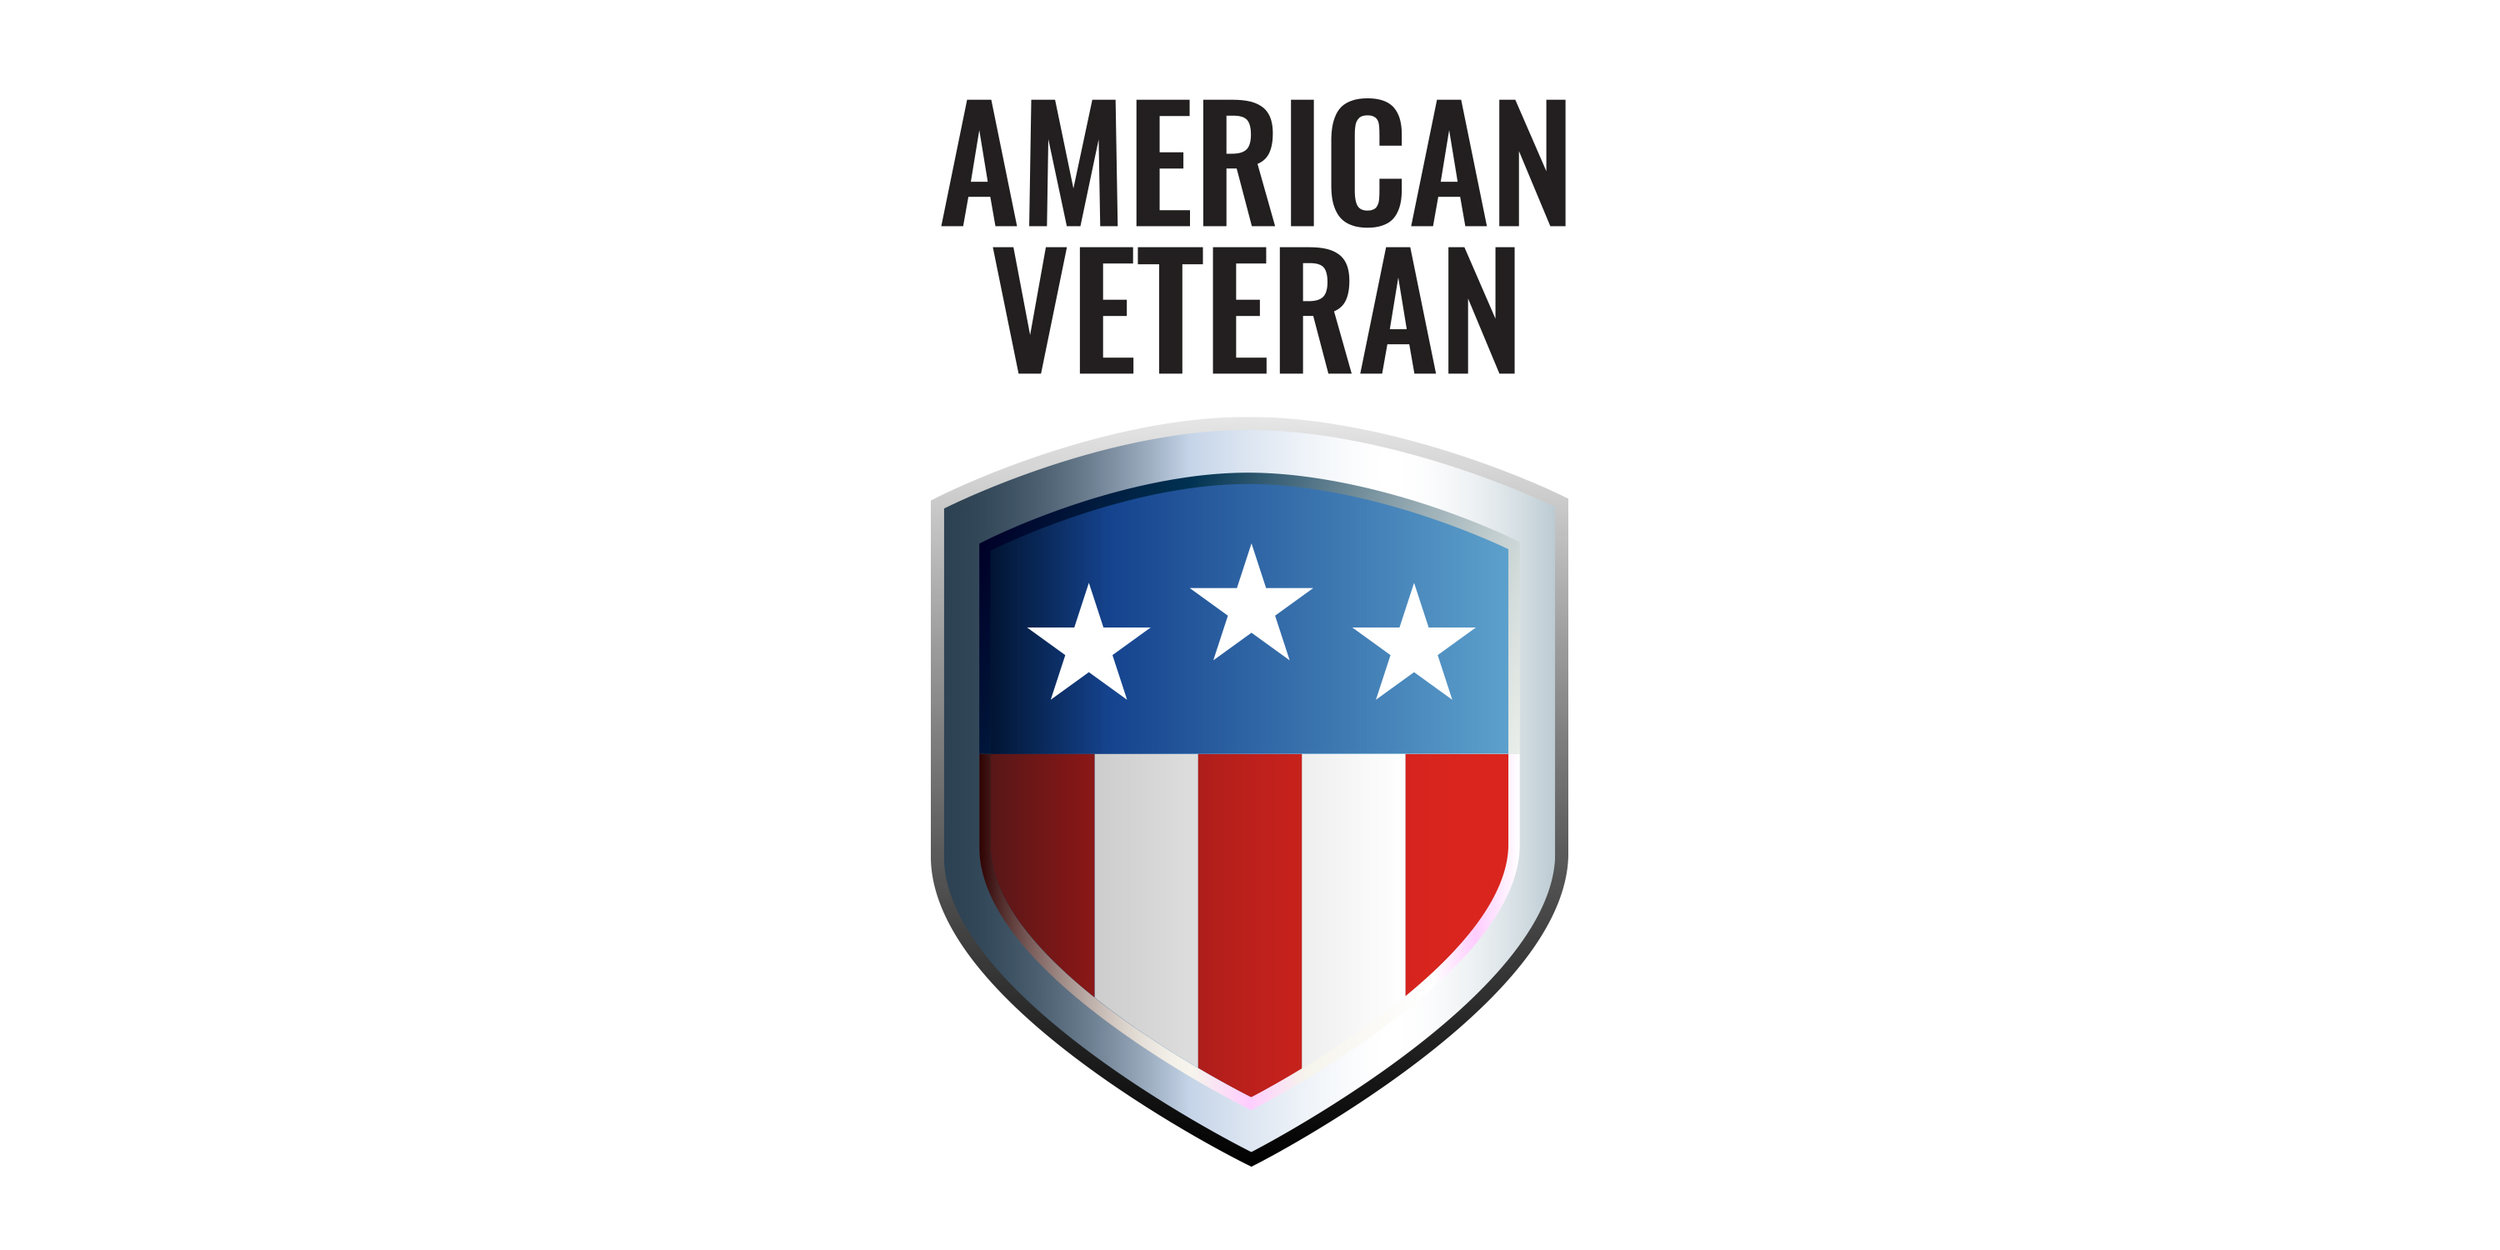 Web_Samples_AmericanVet_Logos_1.jpg